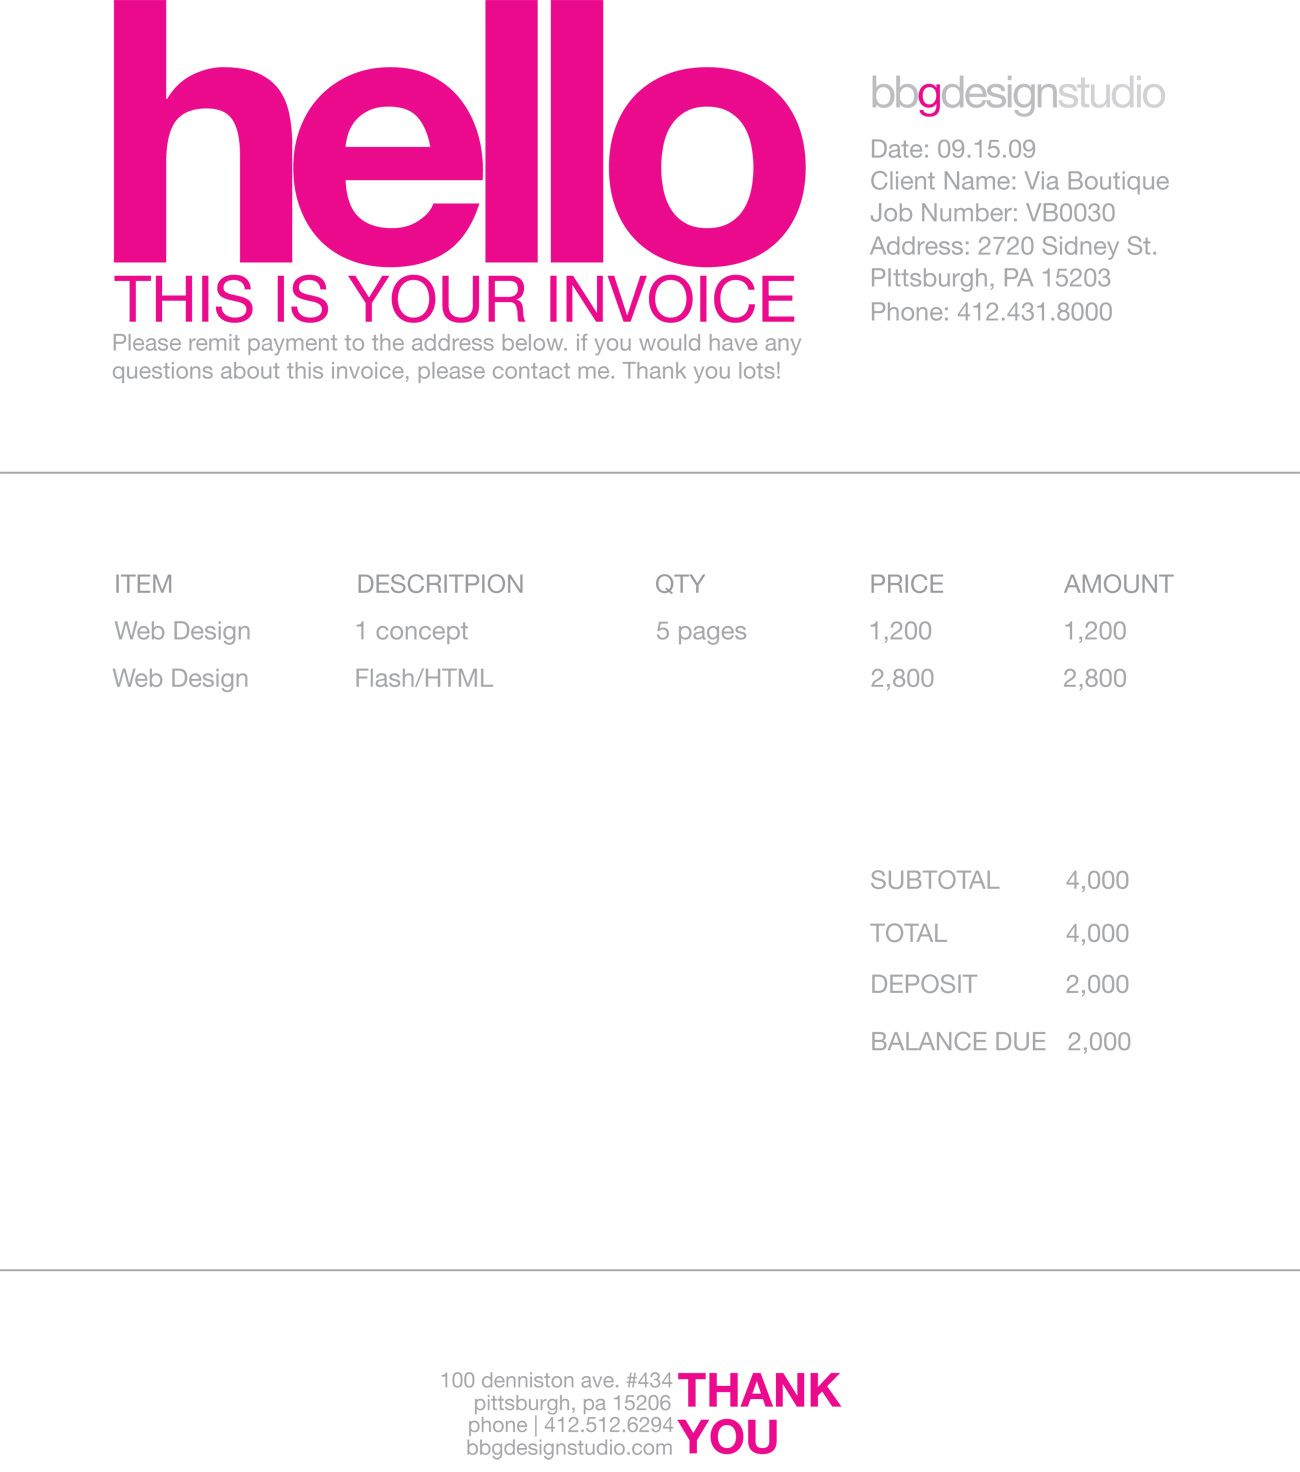 Aaaaeroincus  Scenic  Images About Invoice Design On Pinterest With Likable Sales Invoicing Besides Sample Hotel Invoice Furthermore Blank Invoice Template Printable With Alluring Bill Invoice Format In Word Also Invoice Sample In Word In Addition Invoices Without Gst And Advance Payment Invoice Sample As Well As Invoice Format In Word Free Download Additionally An Invoice Or A Invoice From Pinterestcom With Aaaaeroincus  Likable  Images About Invoice Design On Pinterest With Alluring Sales Invoicing Besides Sample Hotel Invoice Furthermore Blank Invoice Template Printable And Scenic Bill Invoice Format In Word Also Invoice Sample In Word In Addition Invoices Without Gst From Pinterestcom